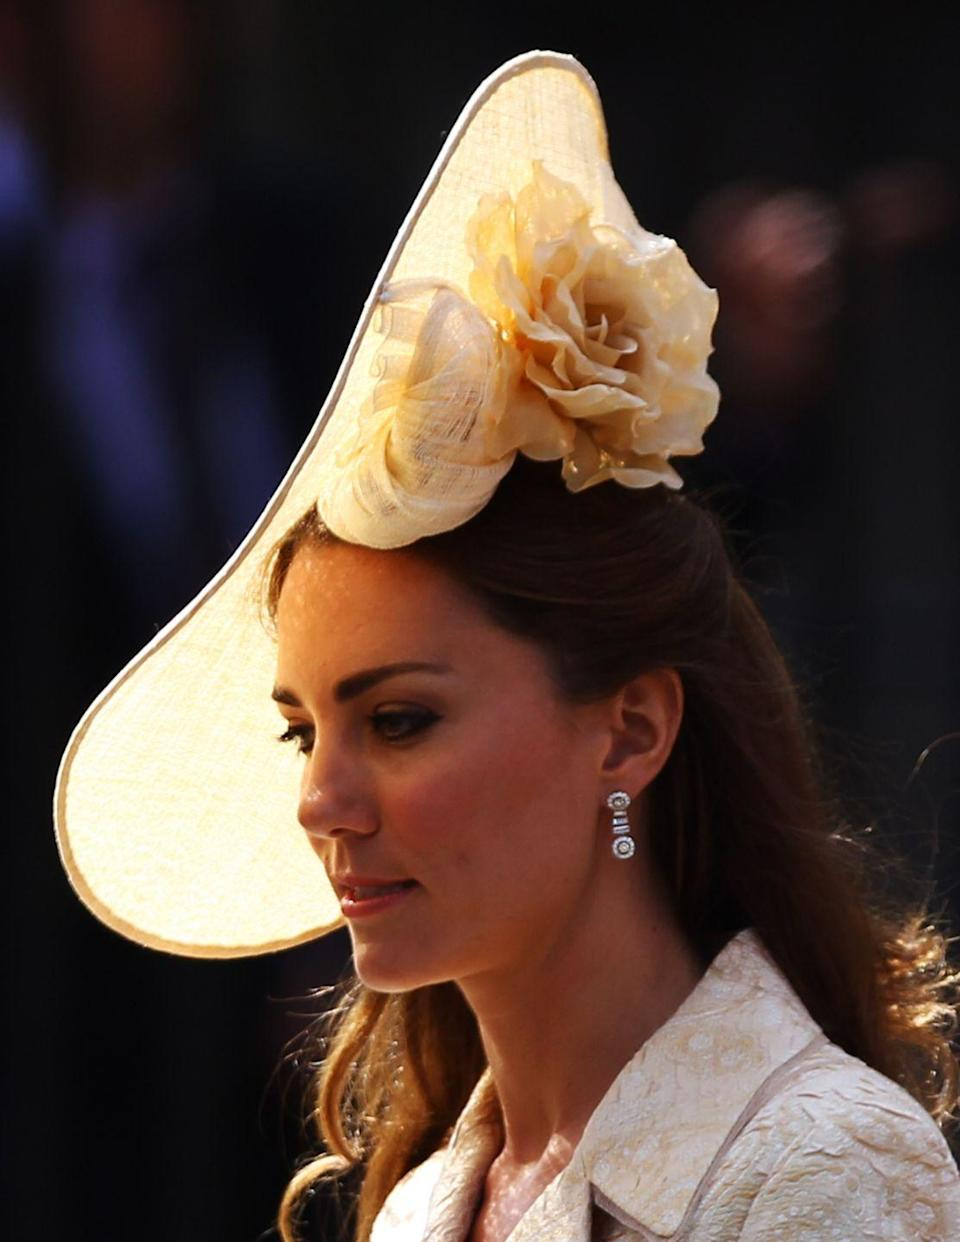 <p>Just a few months after her own nuptials, Duchess Kate wore a bespoke cream-colored fascinator by milliner Gina Foster to her cousin-in-law's wedding.</p>